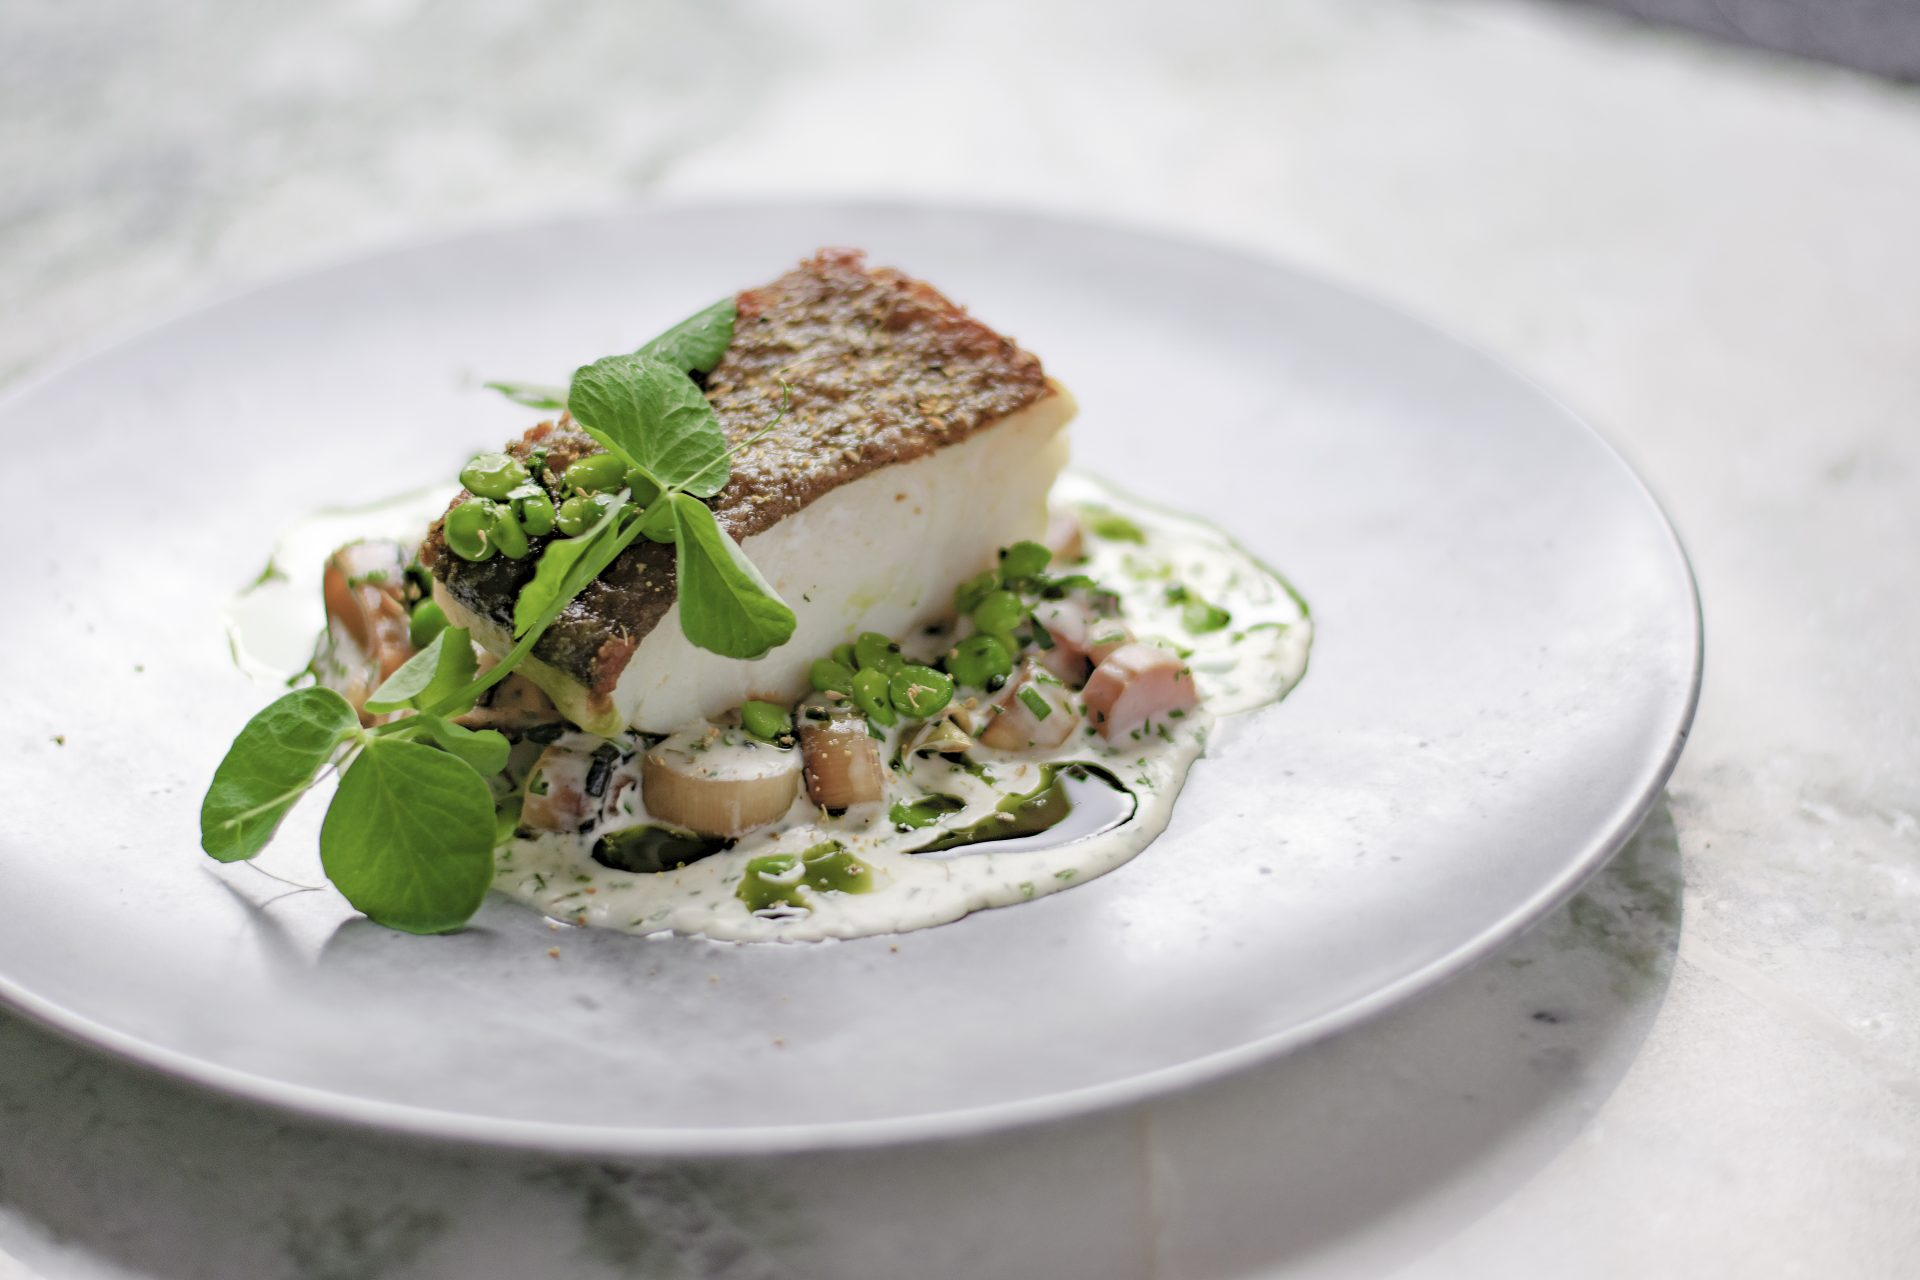 Close up of cod with herbs and sauce on plate